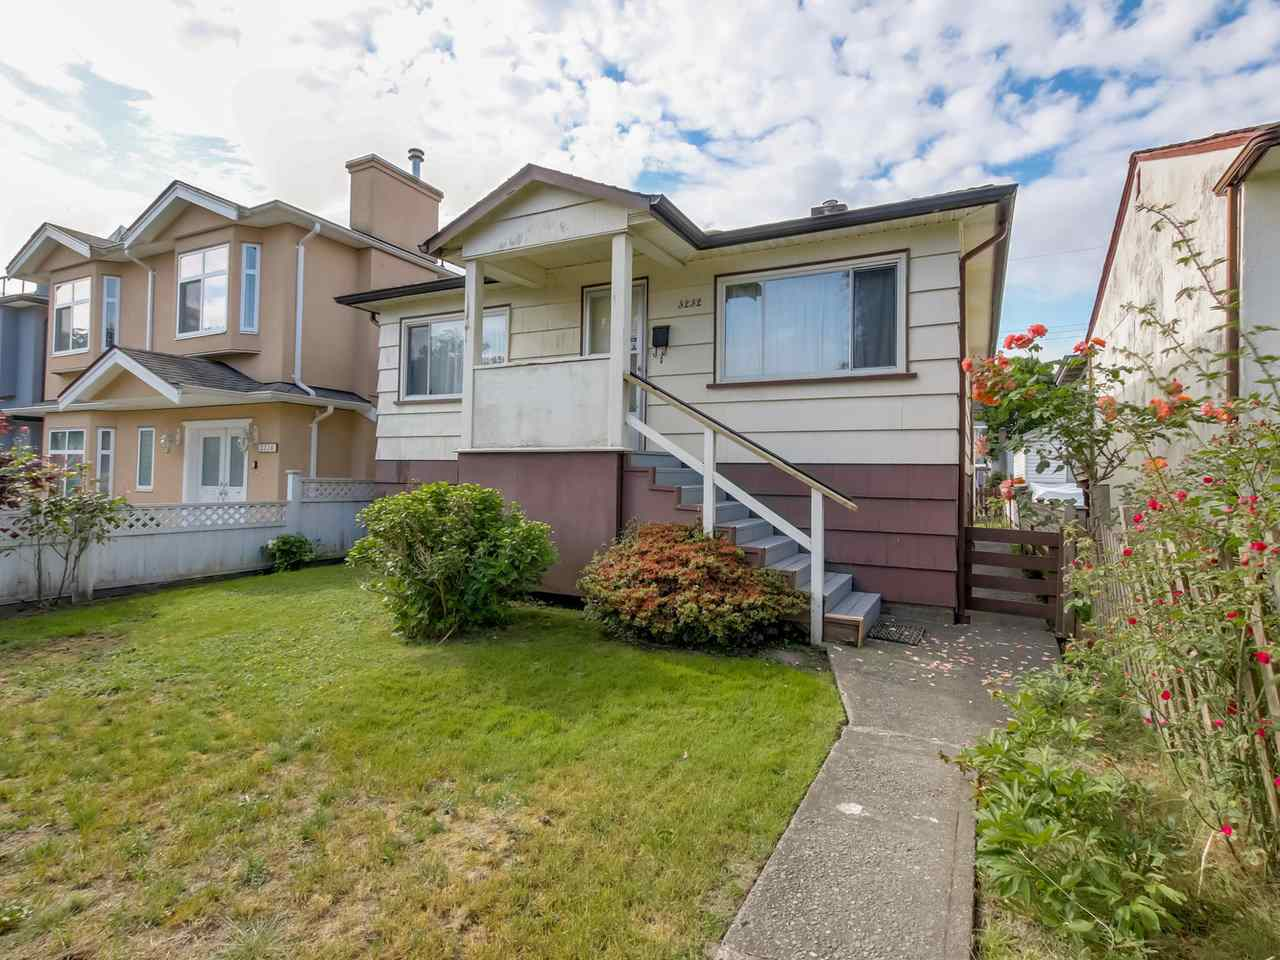 Main Photo: 3232 NAPIER Street in Vancouver: Renfrew VE House for sale (Vancouver East)  : MLS® # R2072671